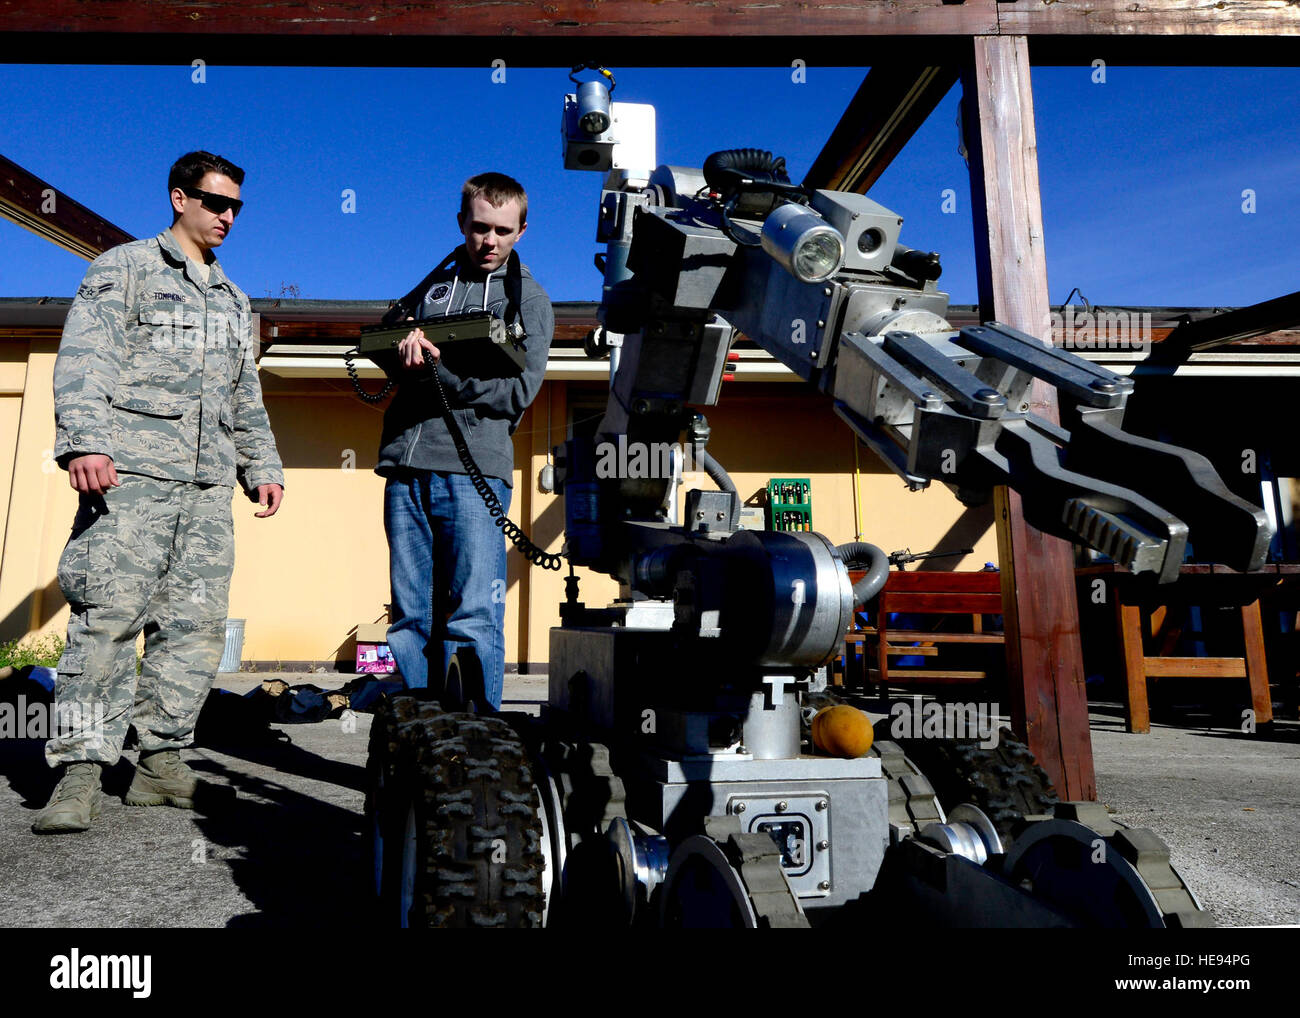 (From left) U.S. Force Airman 1st Class Taylor Tomkins, 31st Civil Engineer Squadron explosive ordnance apprentice, - Stock Image